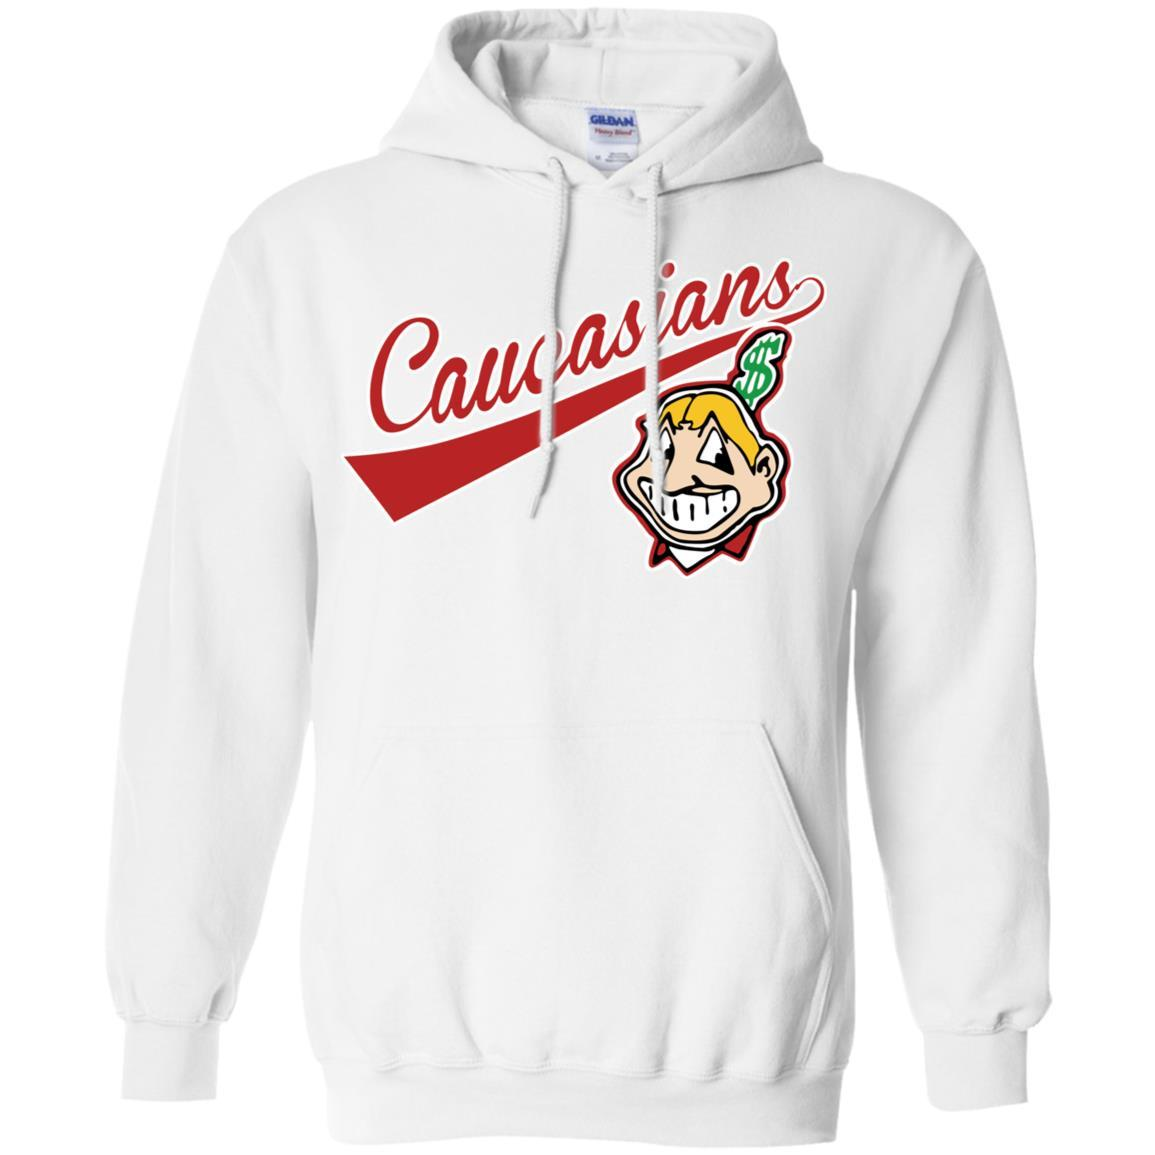 Cleveland Caucasians Native Go Indians - Pullover Hoodie White / 5XL